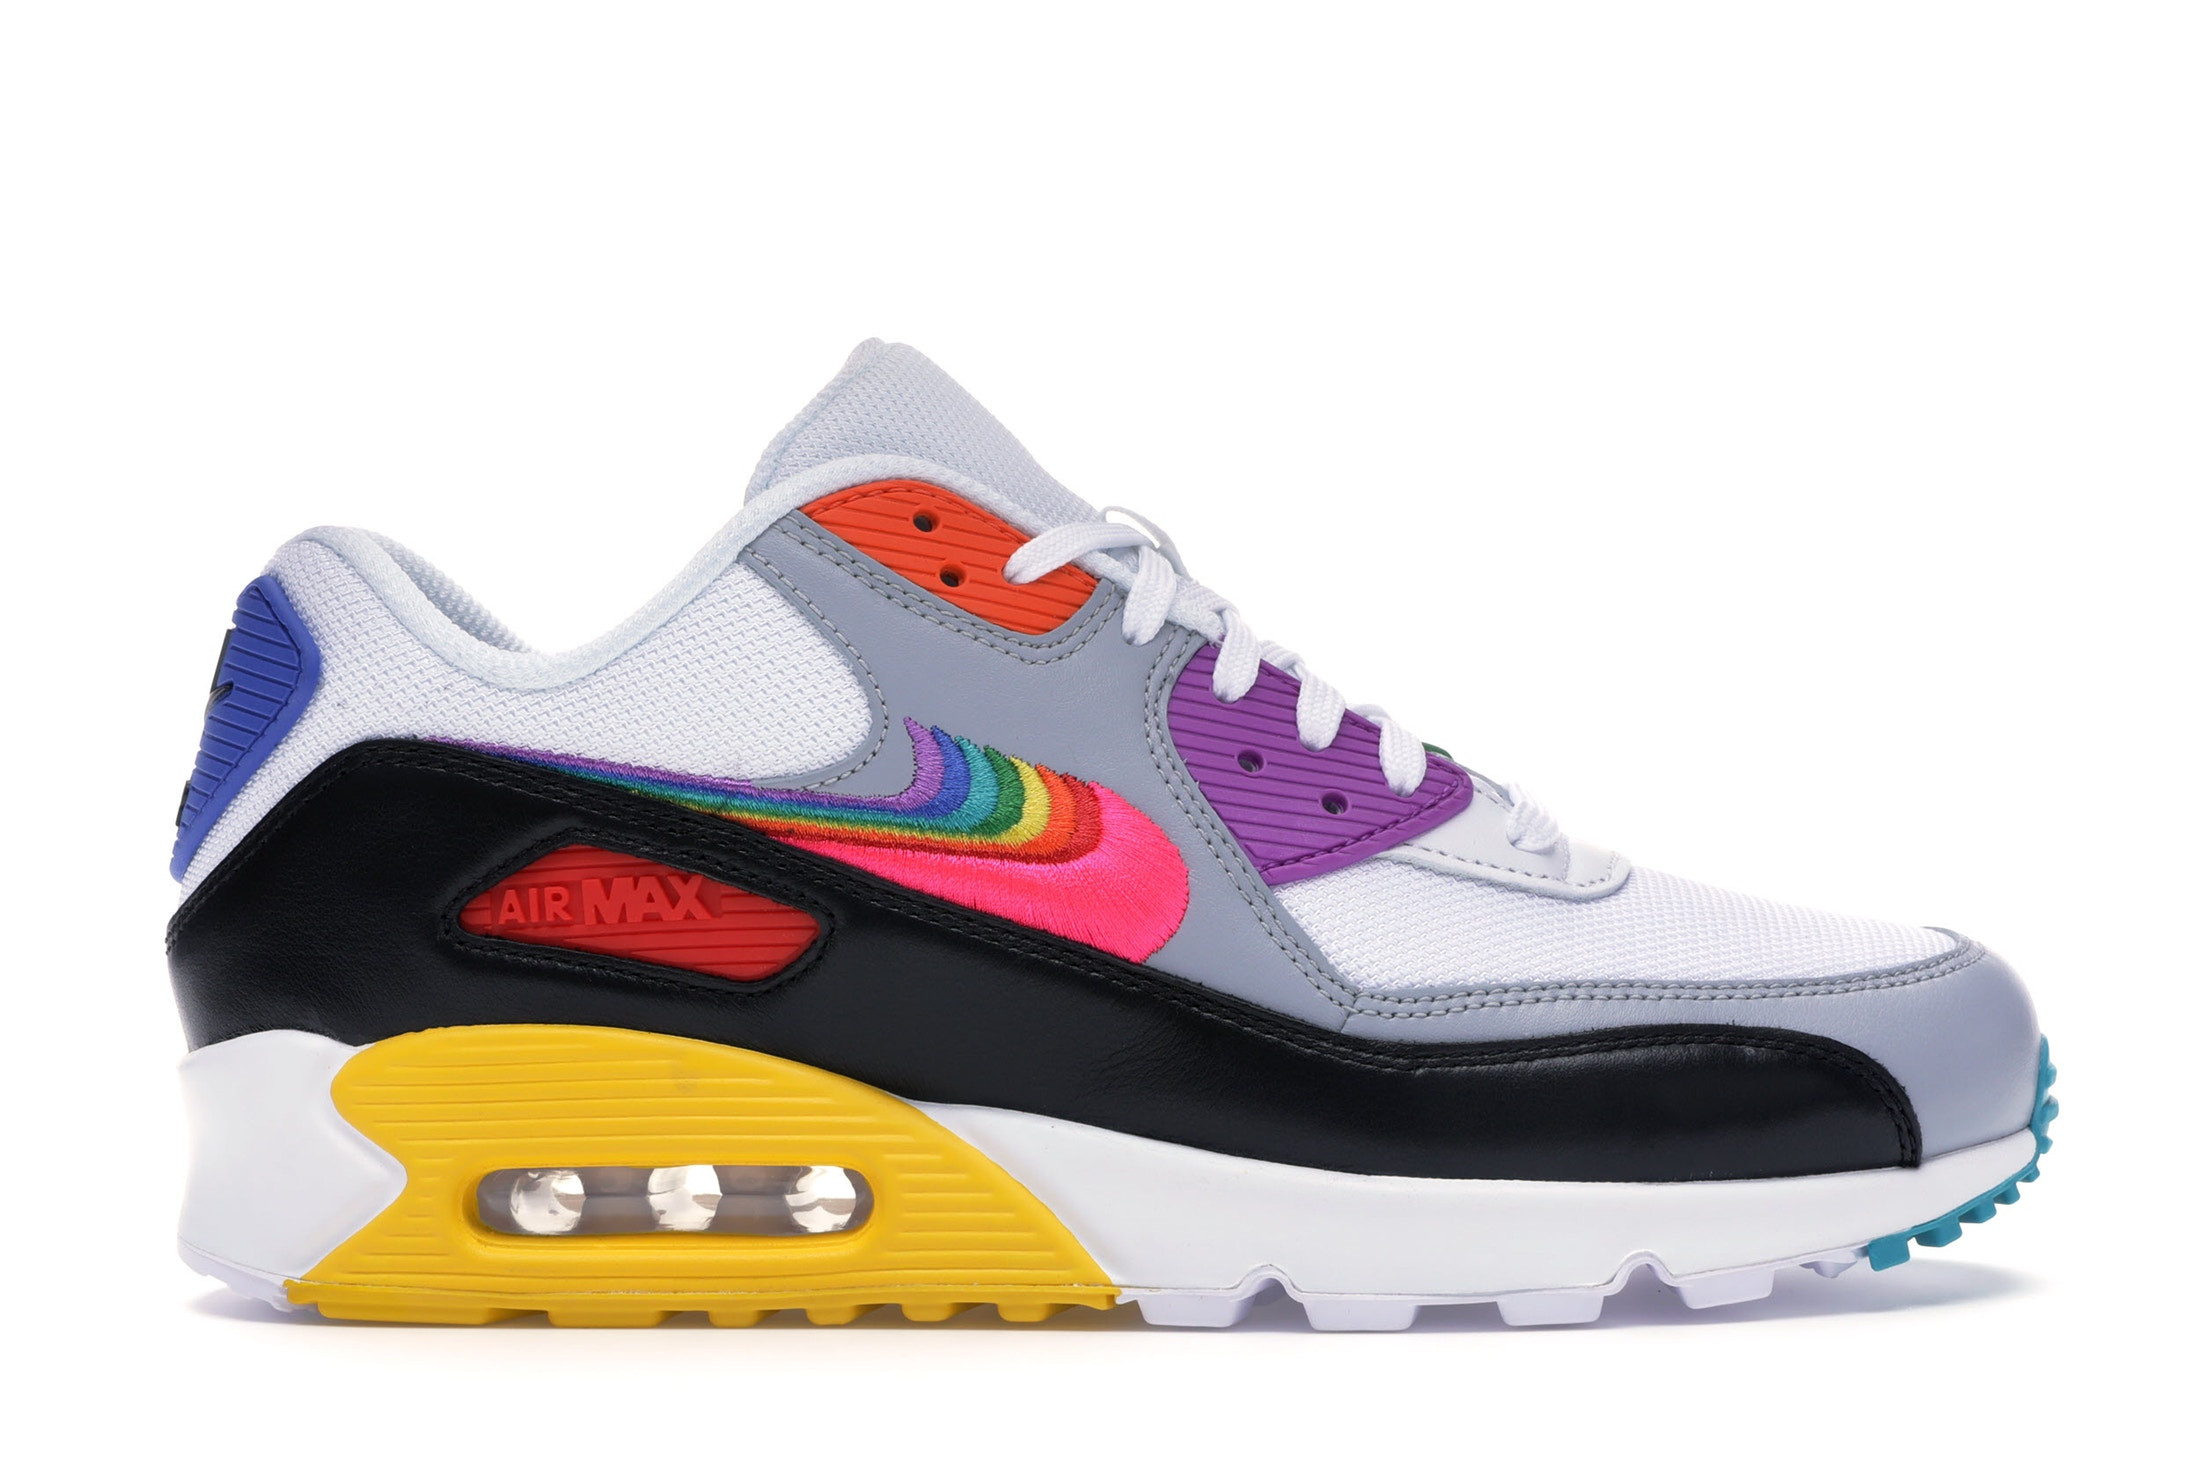 90 The Protect From The Nike Yourself Air Max Rain With